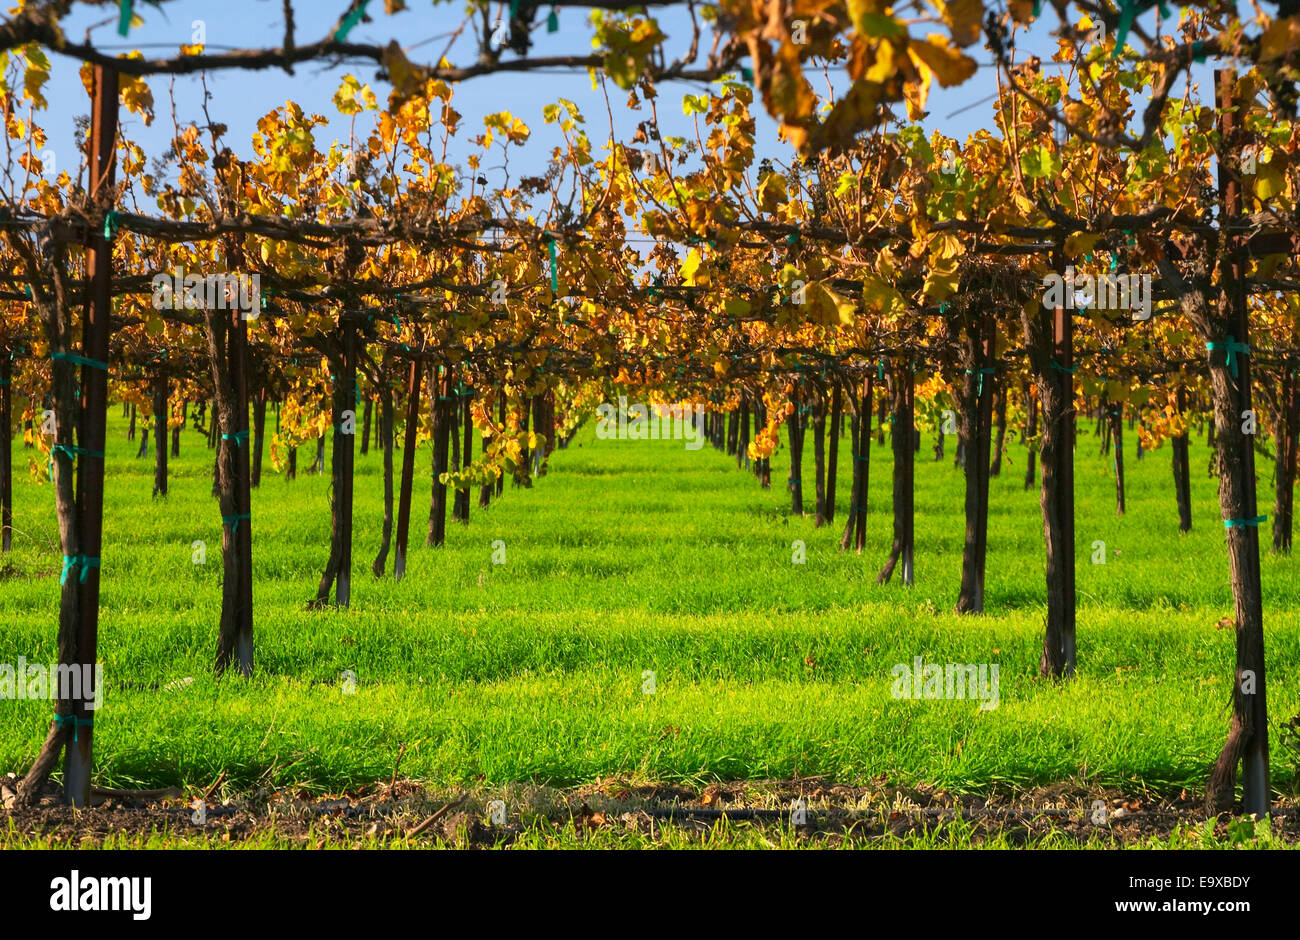 Looking Down Thru The Trellis System Of A Wine Grape